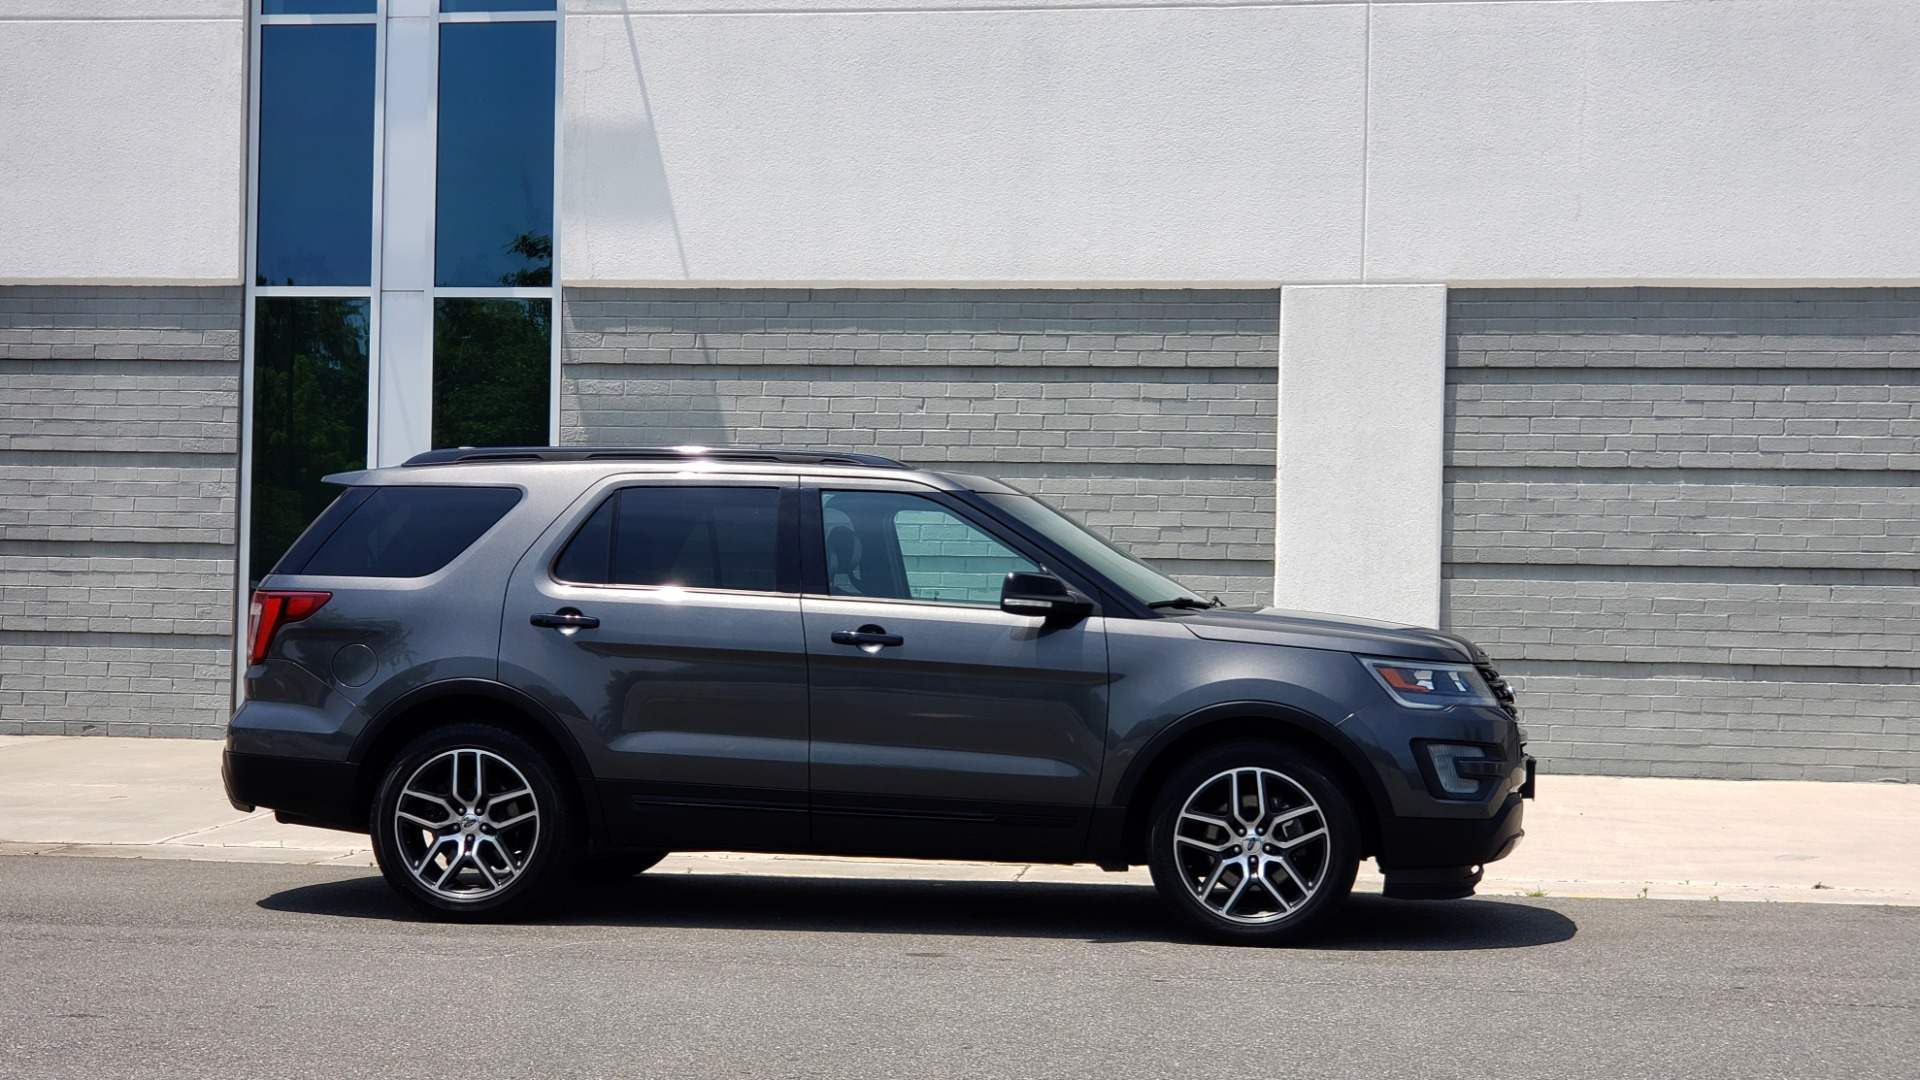 Used 2016 Ford EXPLORER SPORT 4WD / 3.5L ECOBOOST / 6-SPD AUTO / BSM / REARVIEW for sale Sold at Formula Imports in Charlotte NC 28227 8